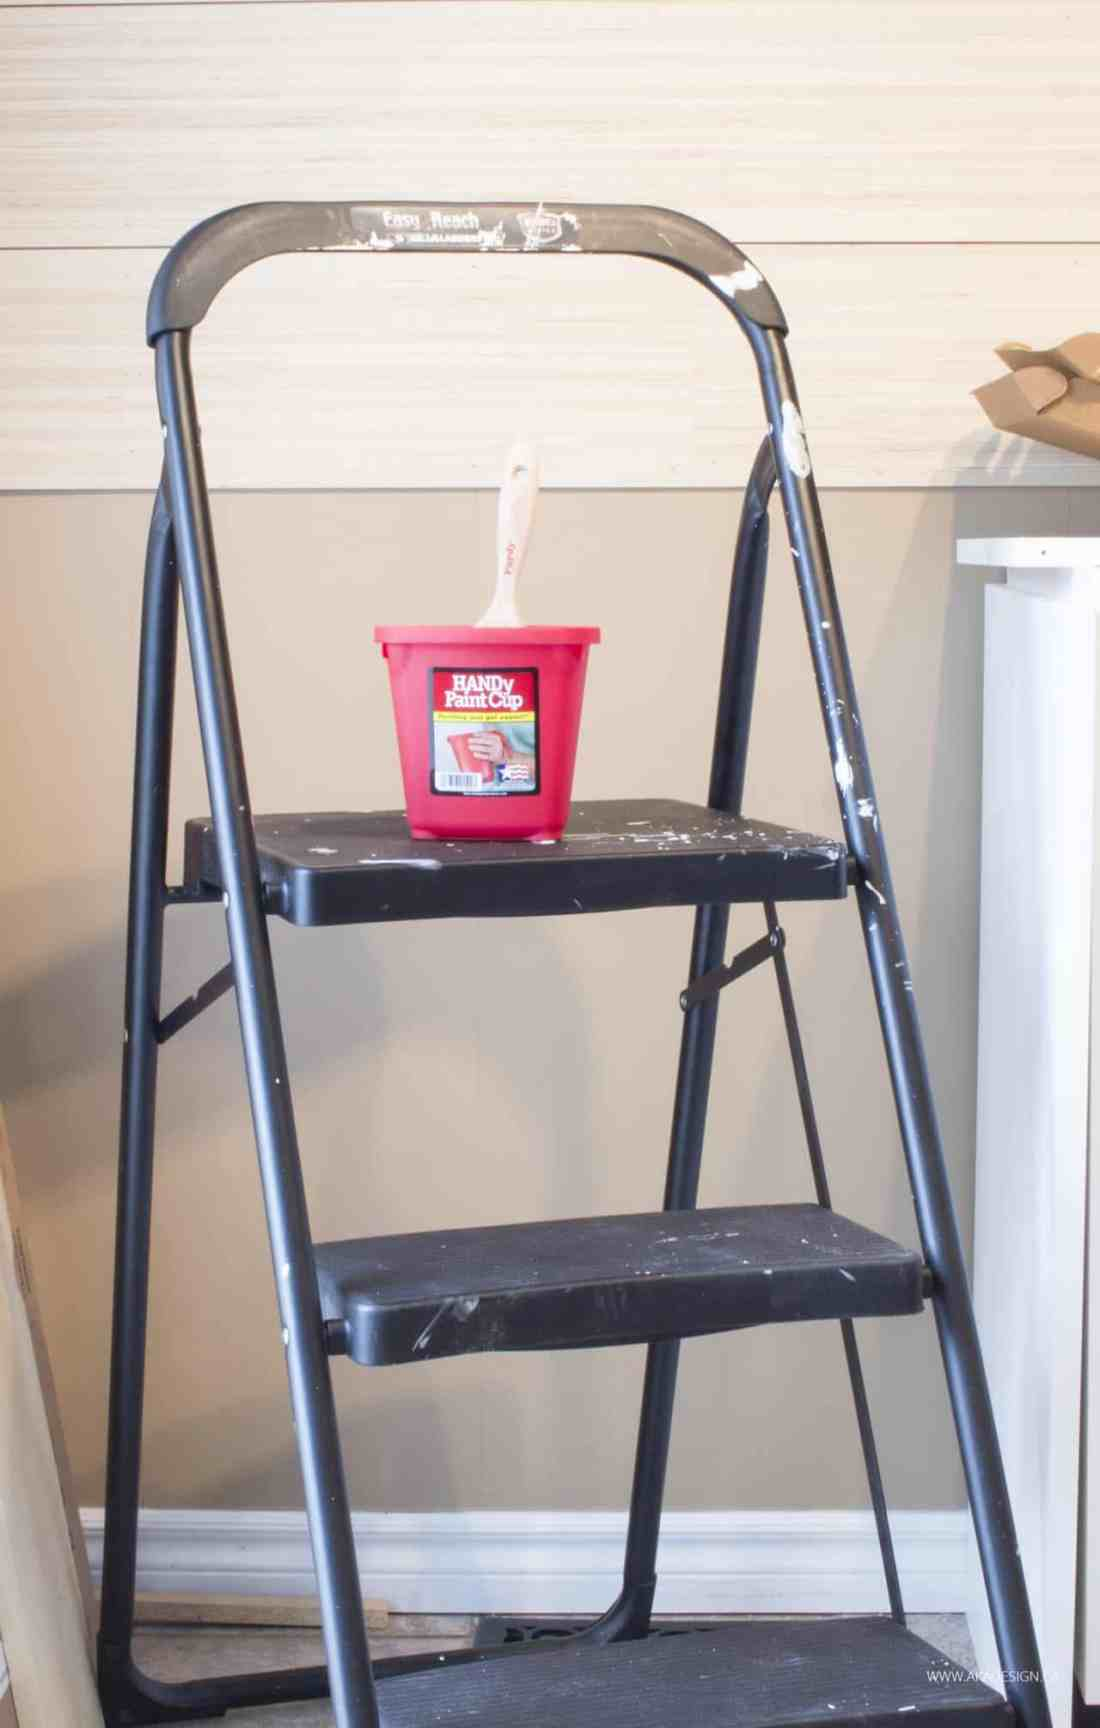 HANDy Paint Cup on ladder